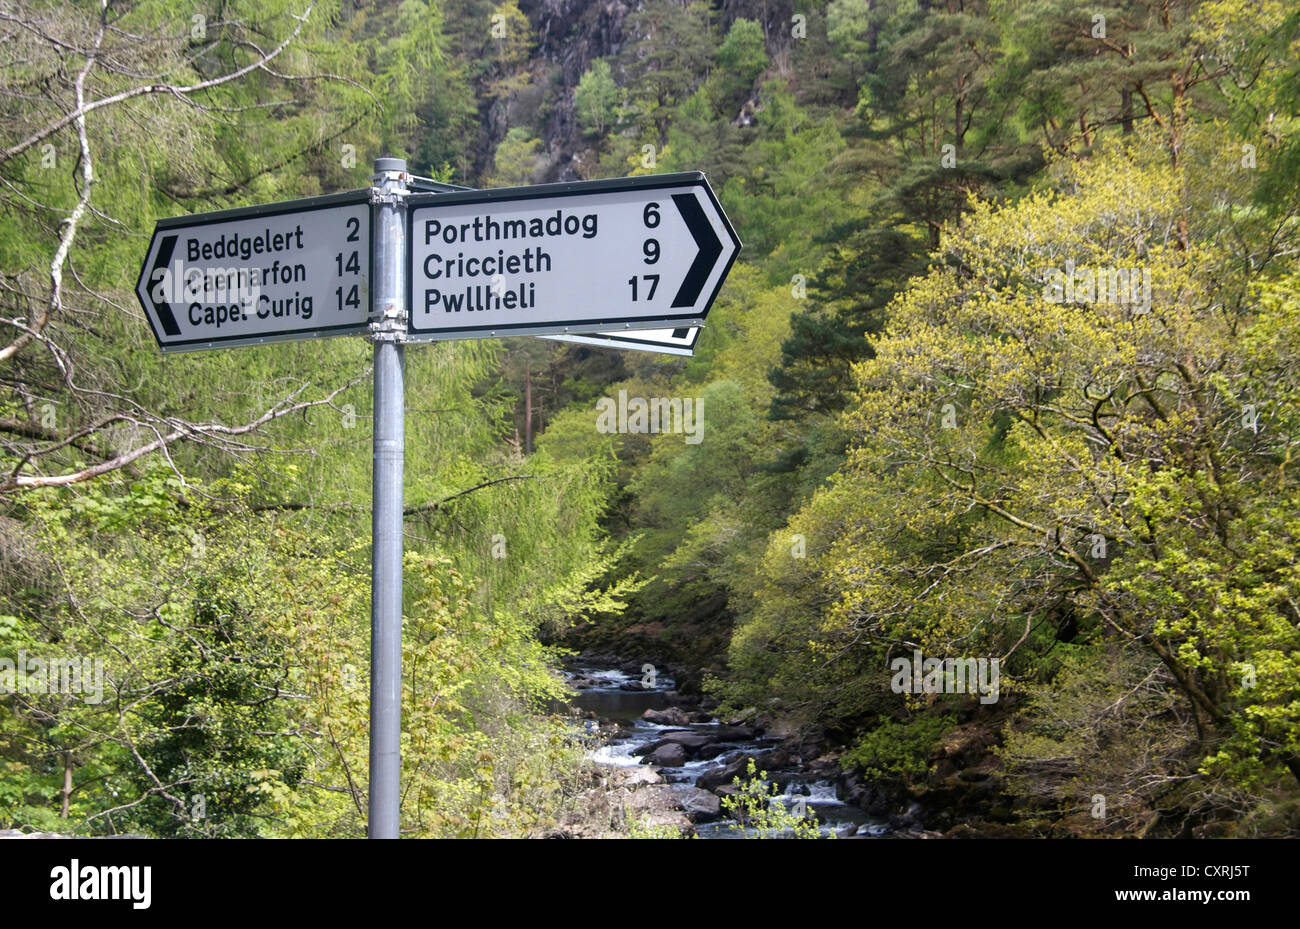 Road signpost with Welsh place names in Aberglaslyn Gorge Near Beddgelert Gwynedd North Wales UK - Stock Image